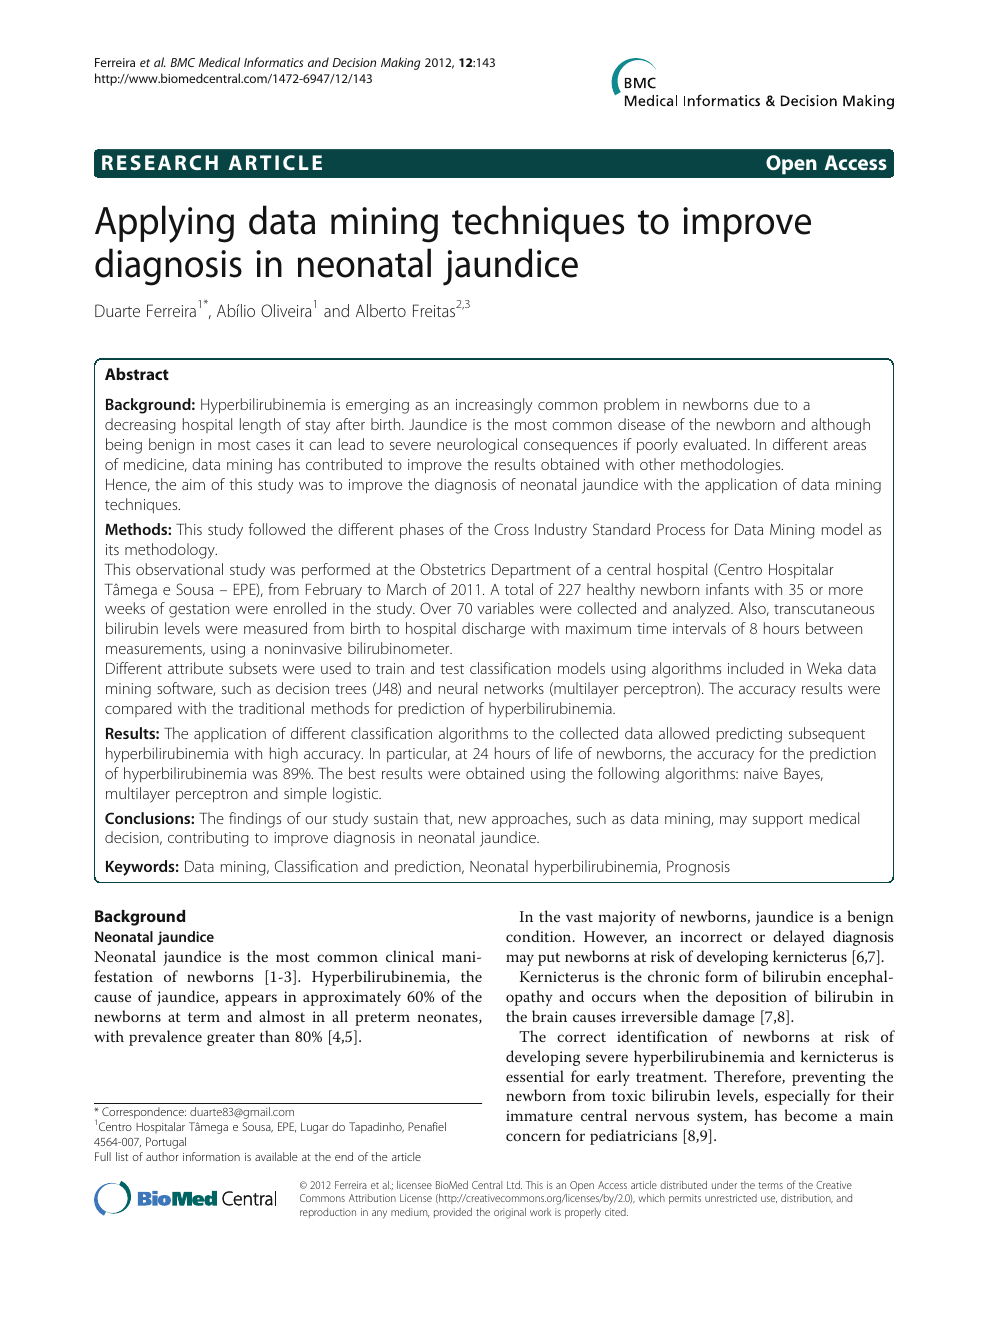 Applying data mining techniques to improve diagnosis in